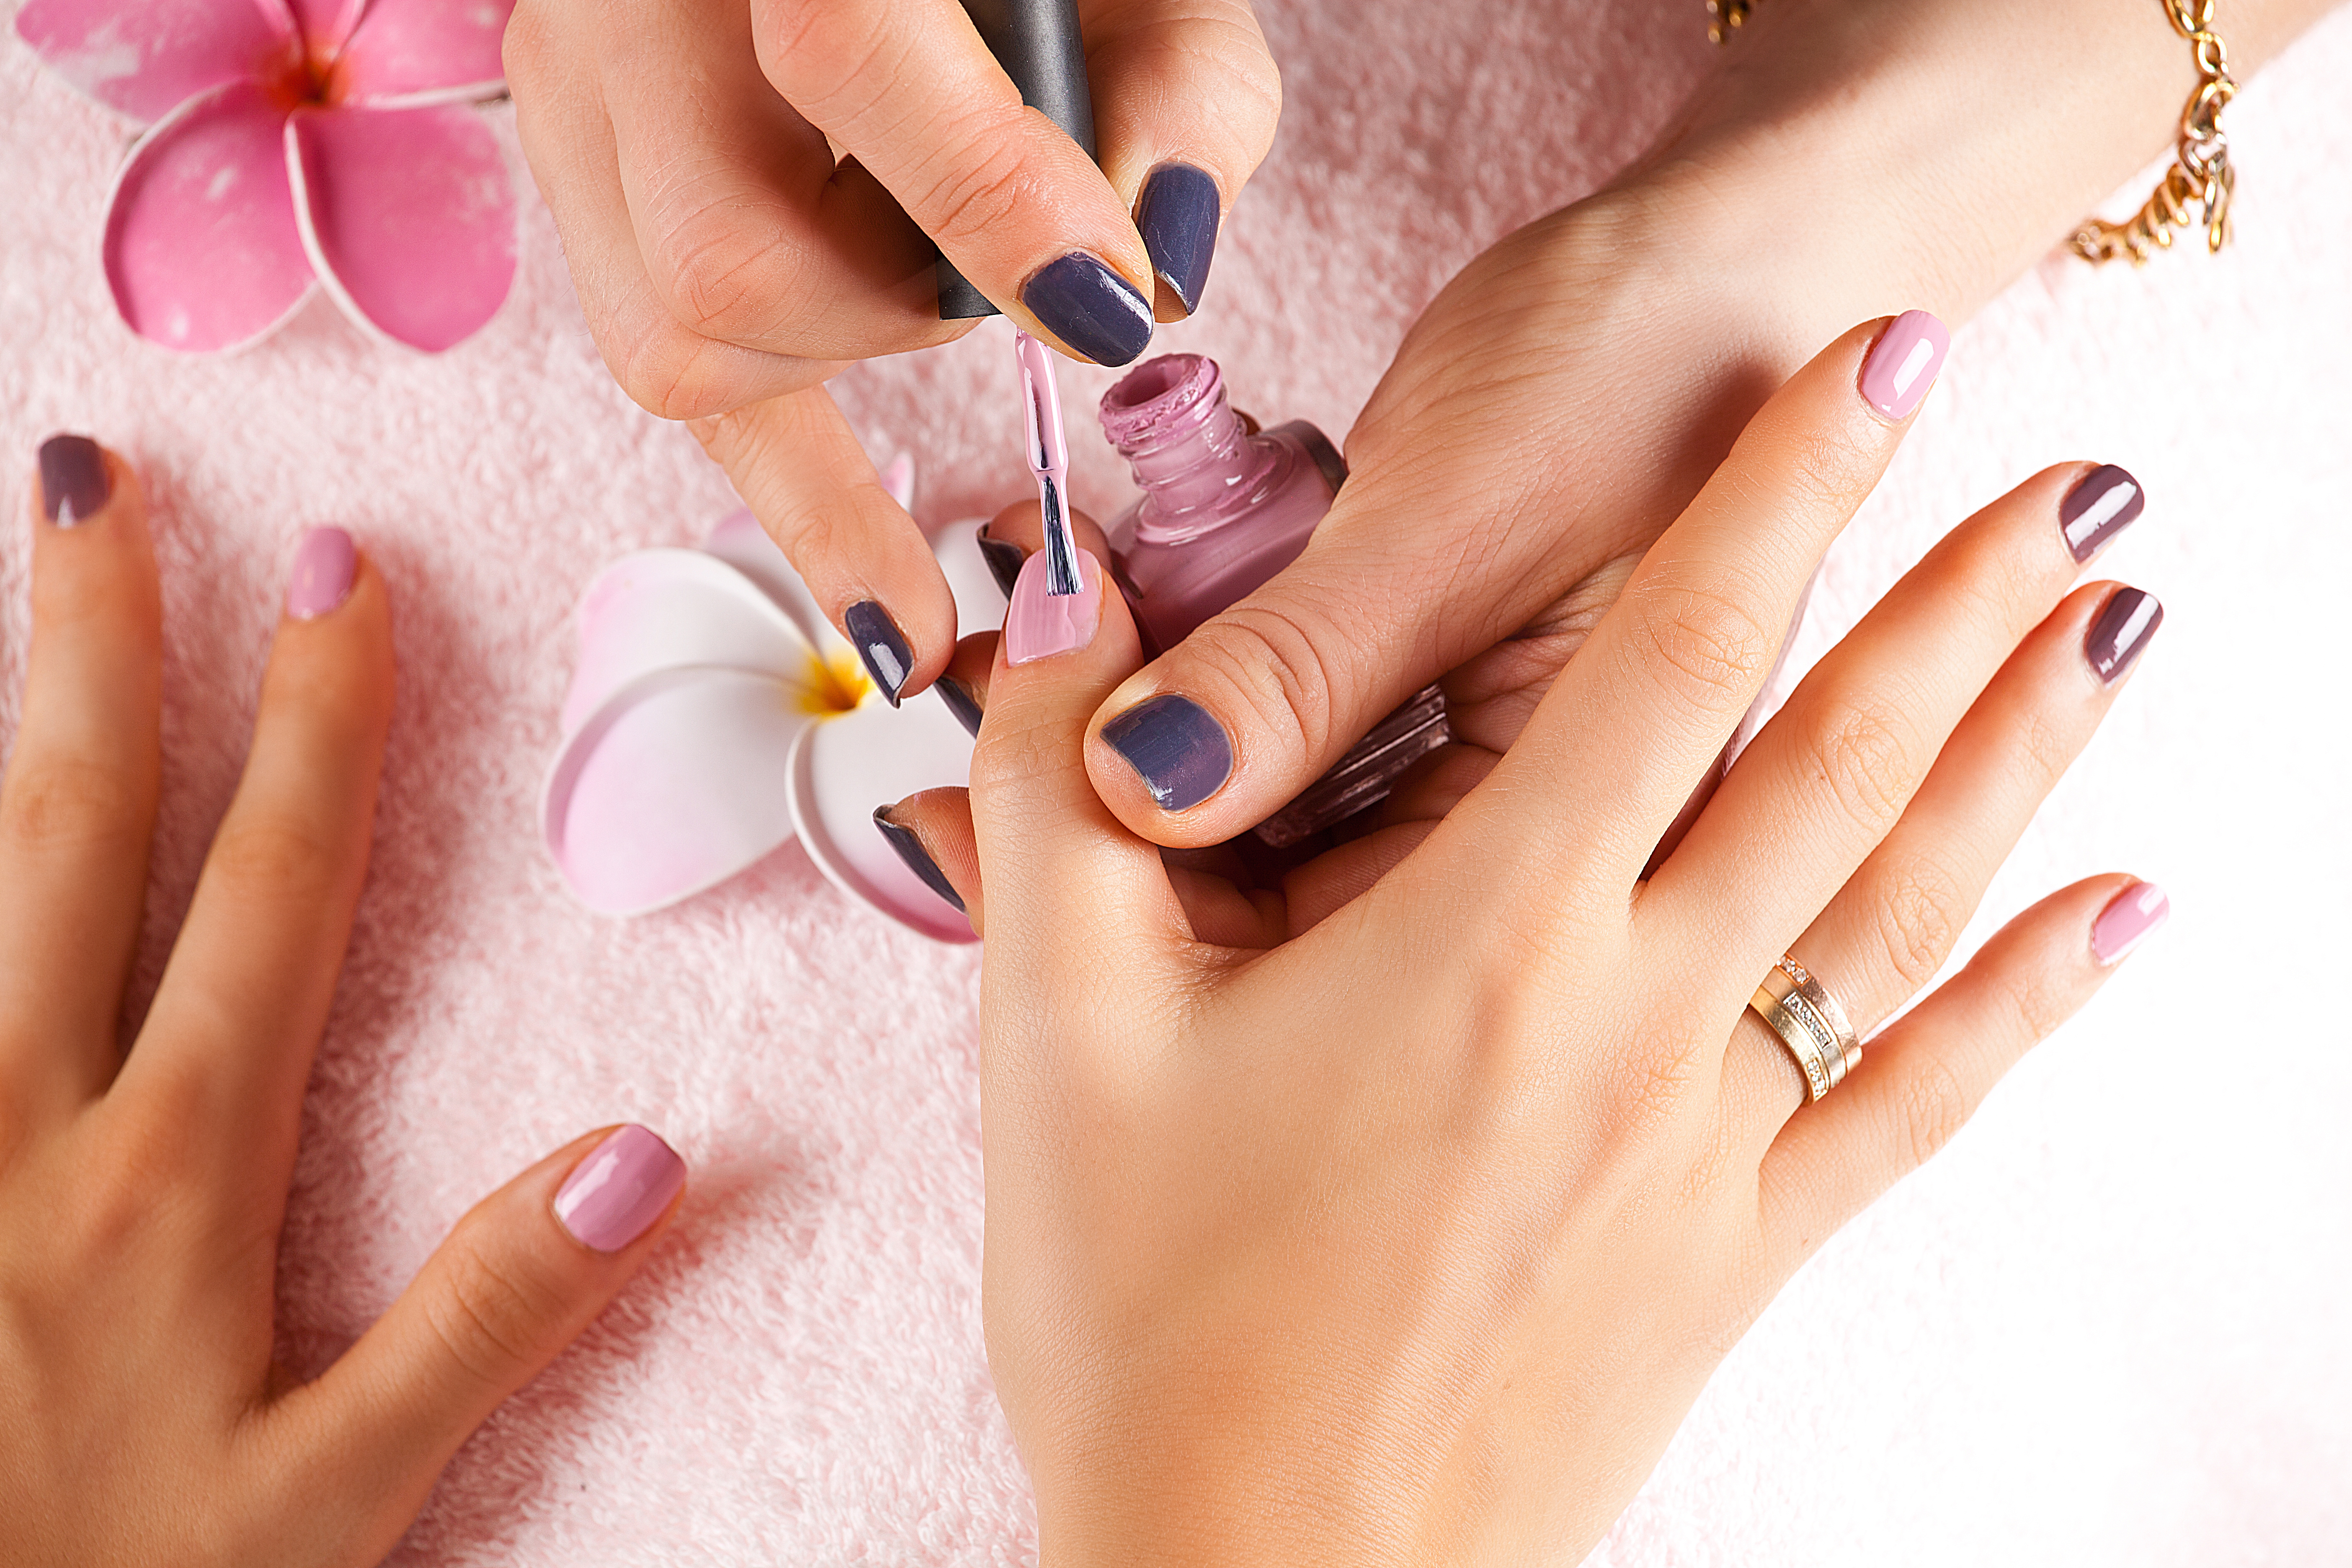 Caesars Nails & Day Spa Contact Luxury Nail Salon & Day Spa in ...